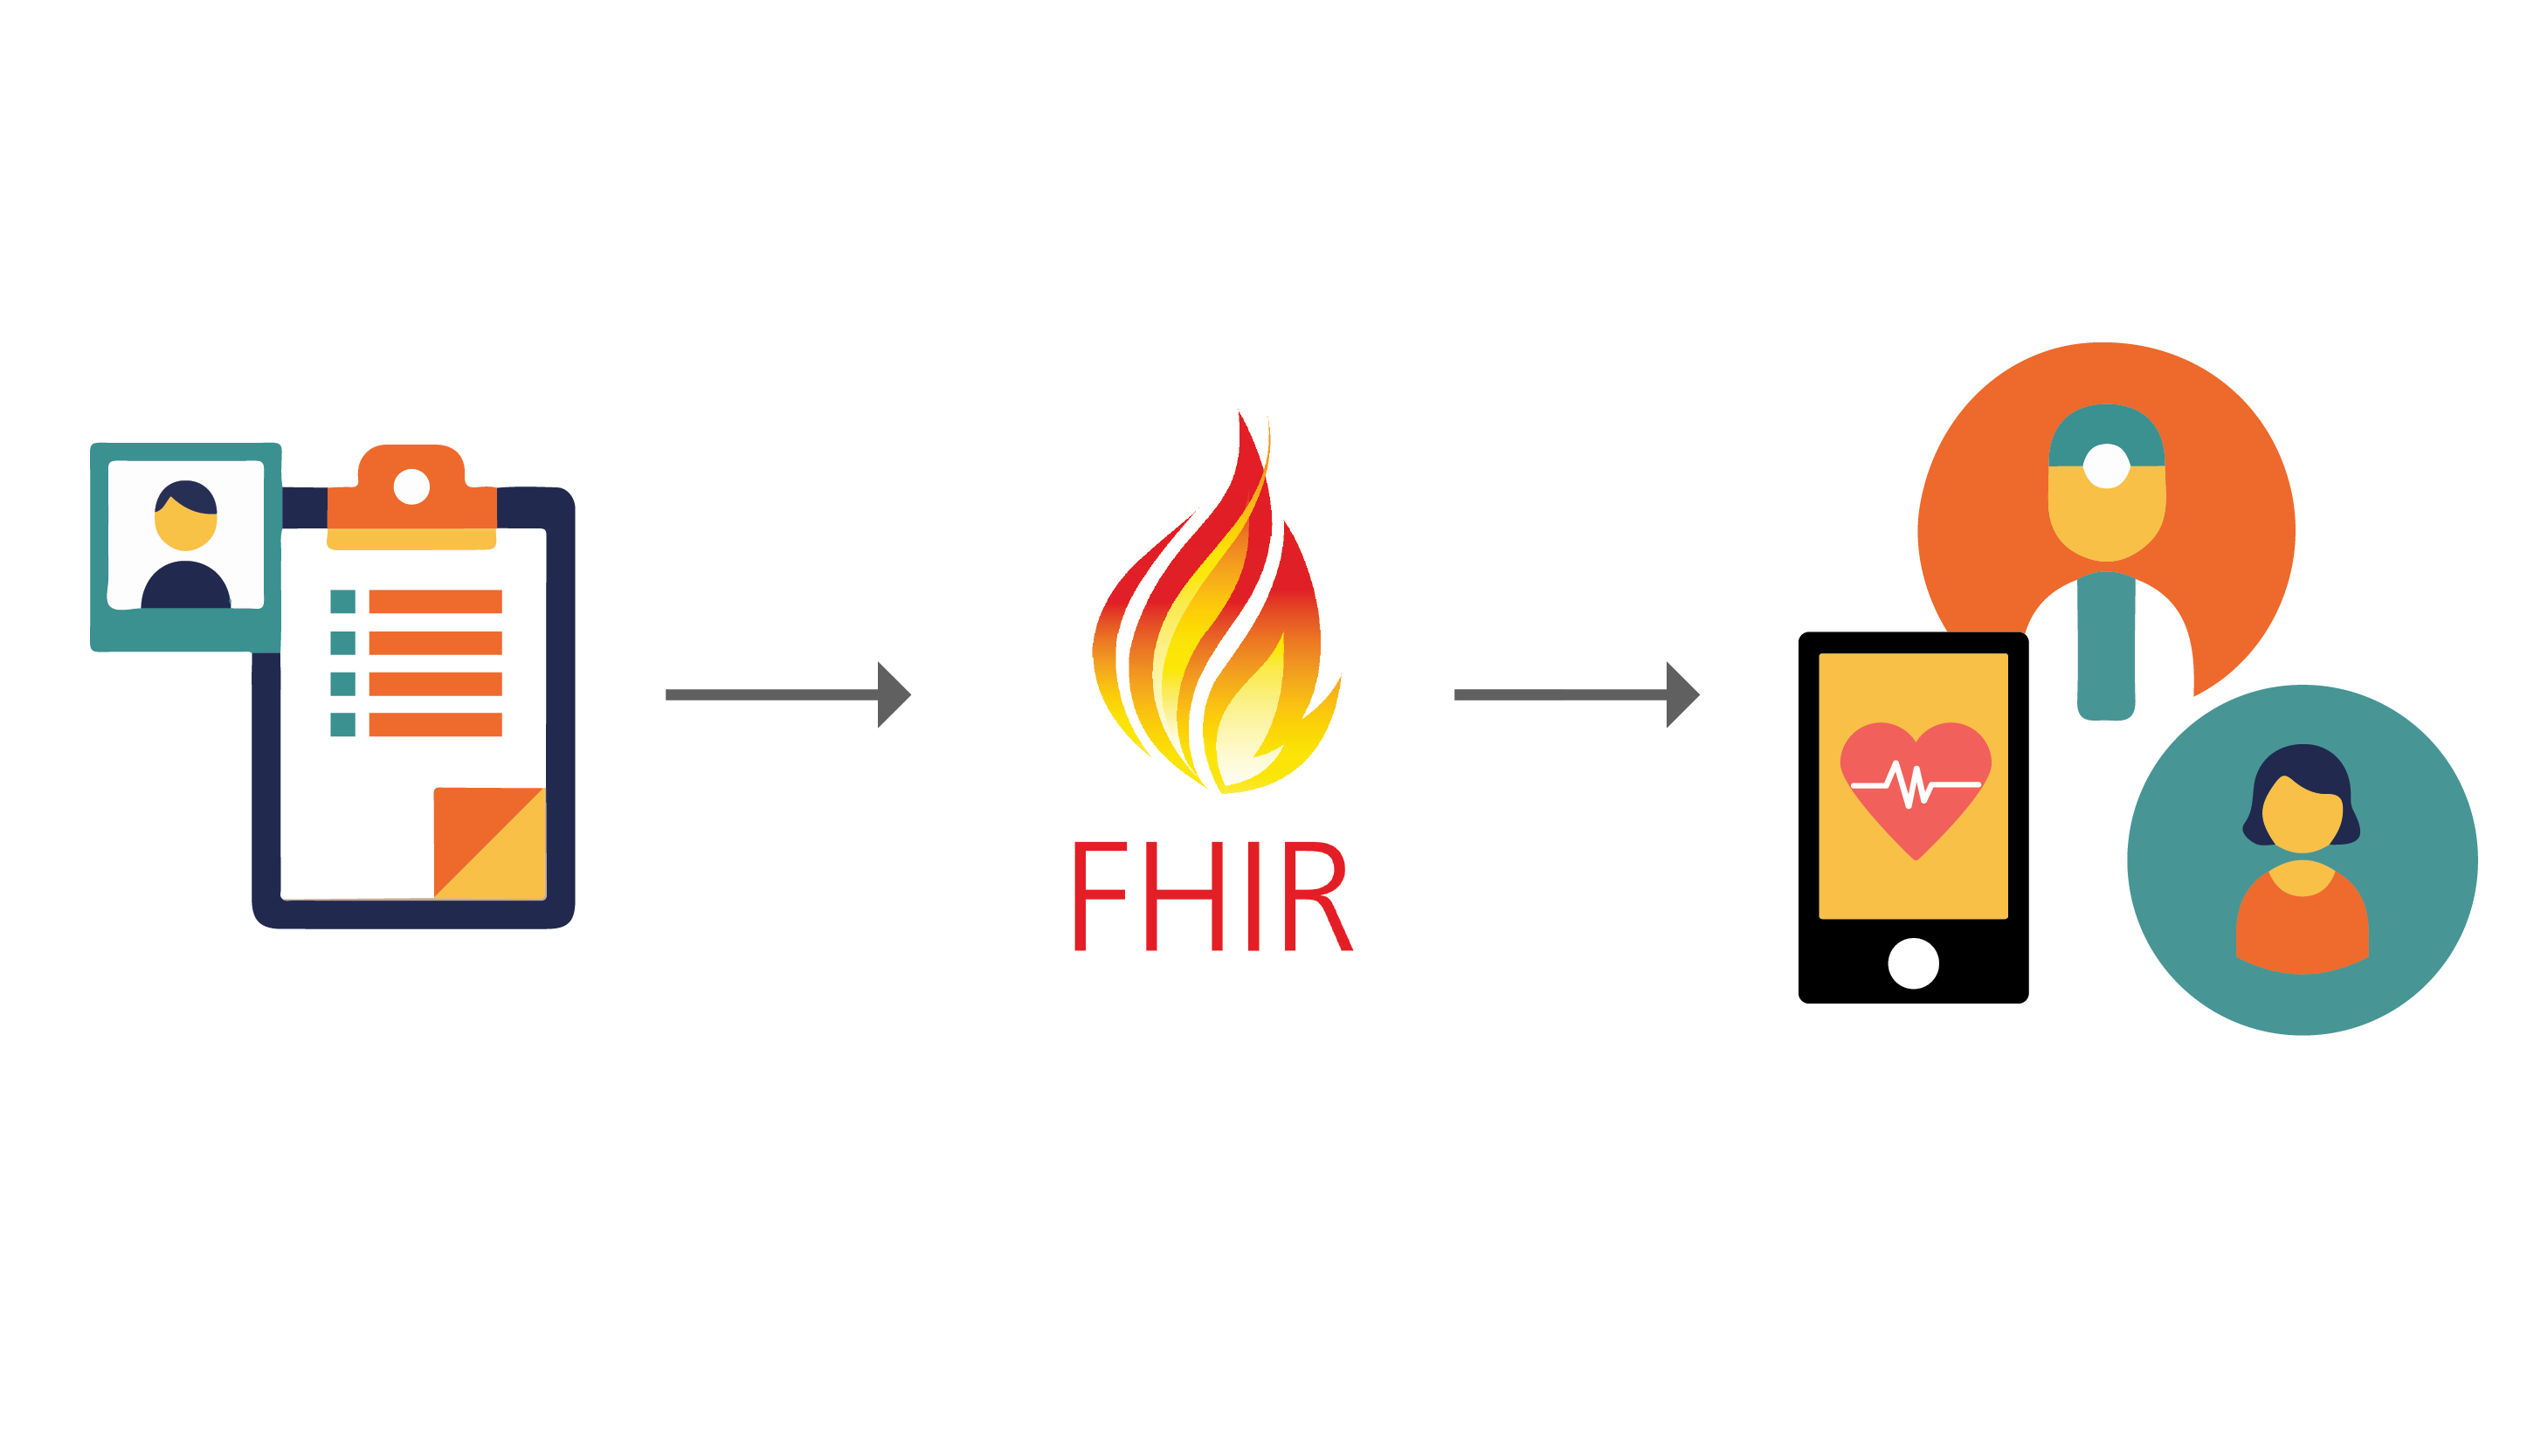 How the Burning FHIR Affects Healthcare Organizations